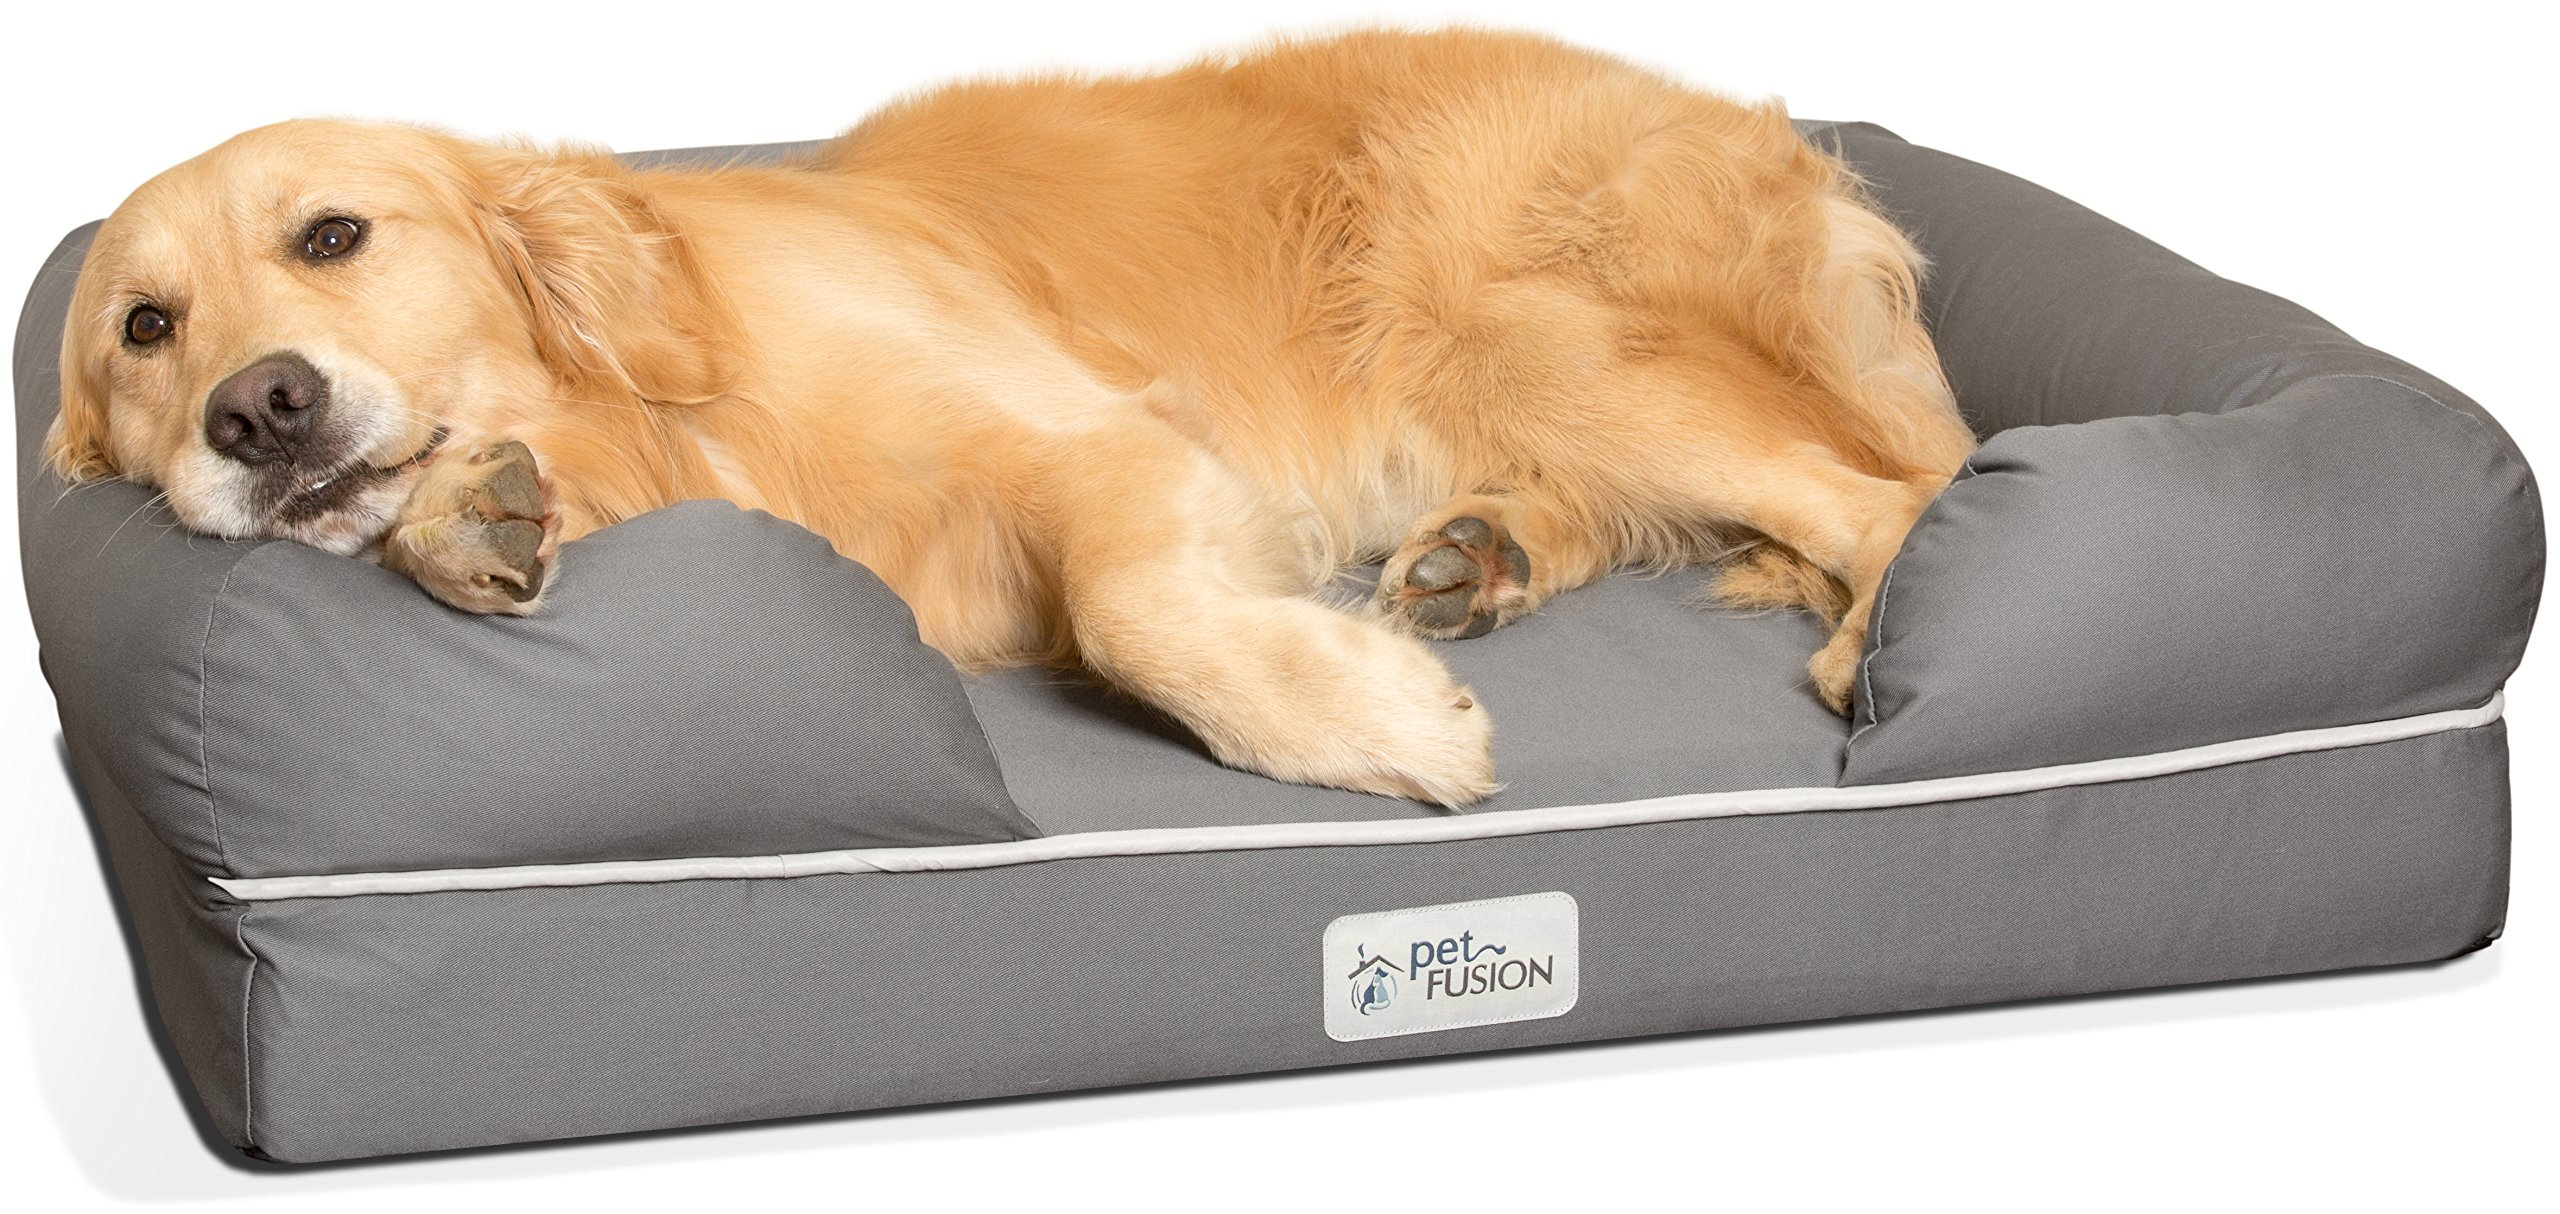 PetFusion Ultimate Solid 4'' Memory Foam Dog Bed for Medium & Large Dogs (36x28x9'' orthopedic dog bed; Gray). Replacement covers & blankets also avail